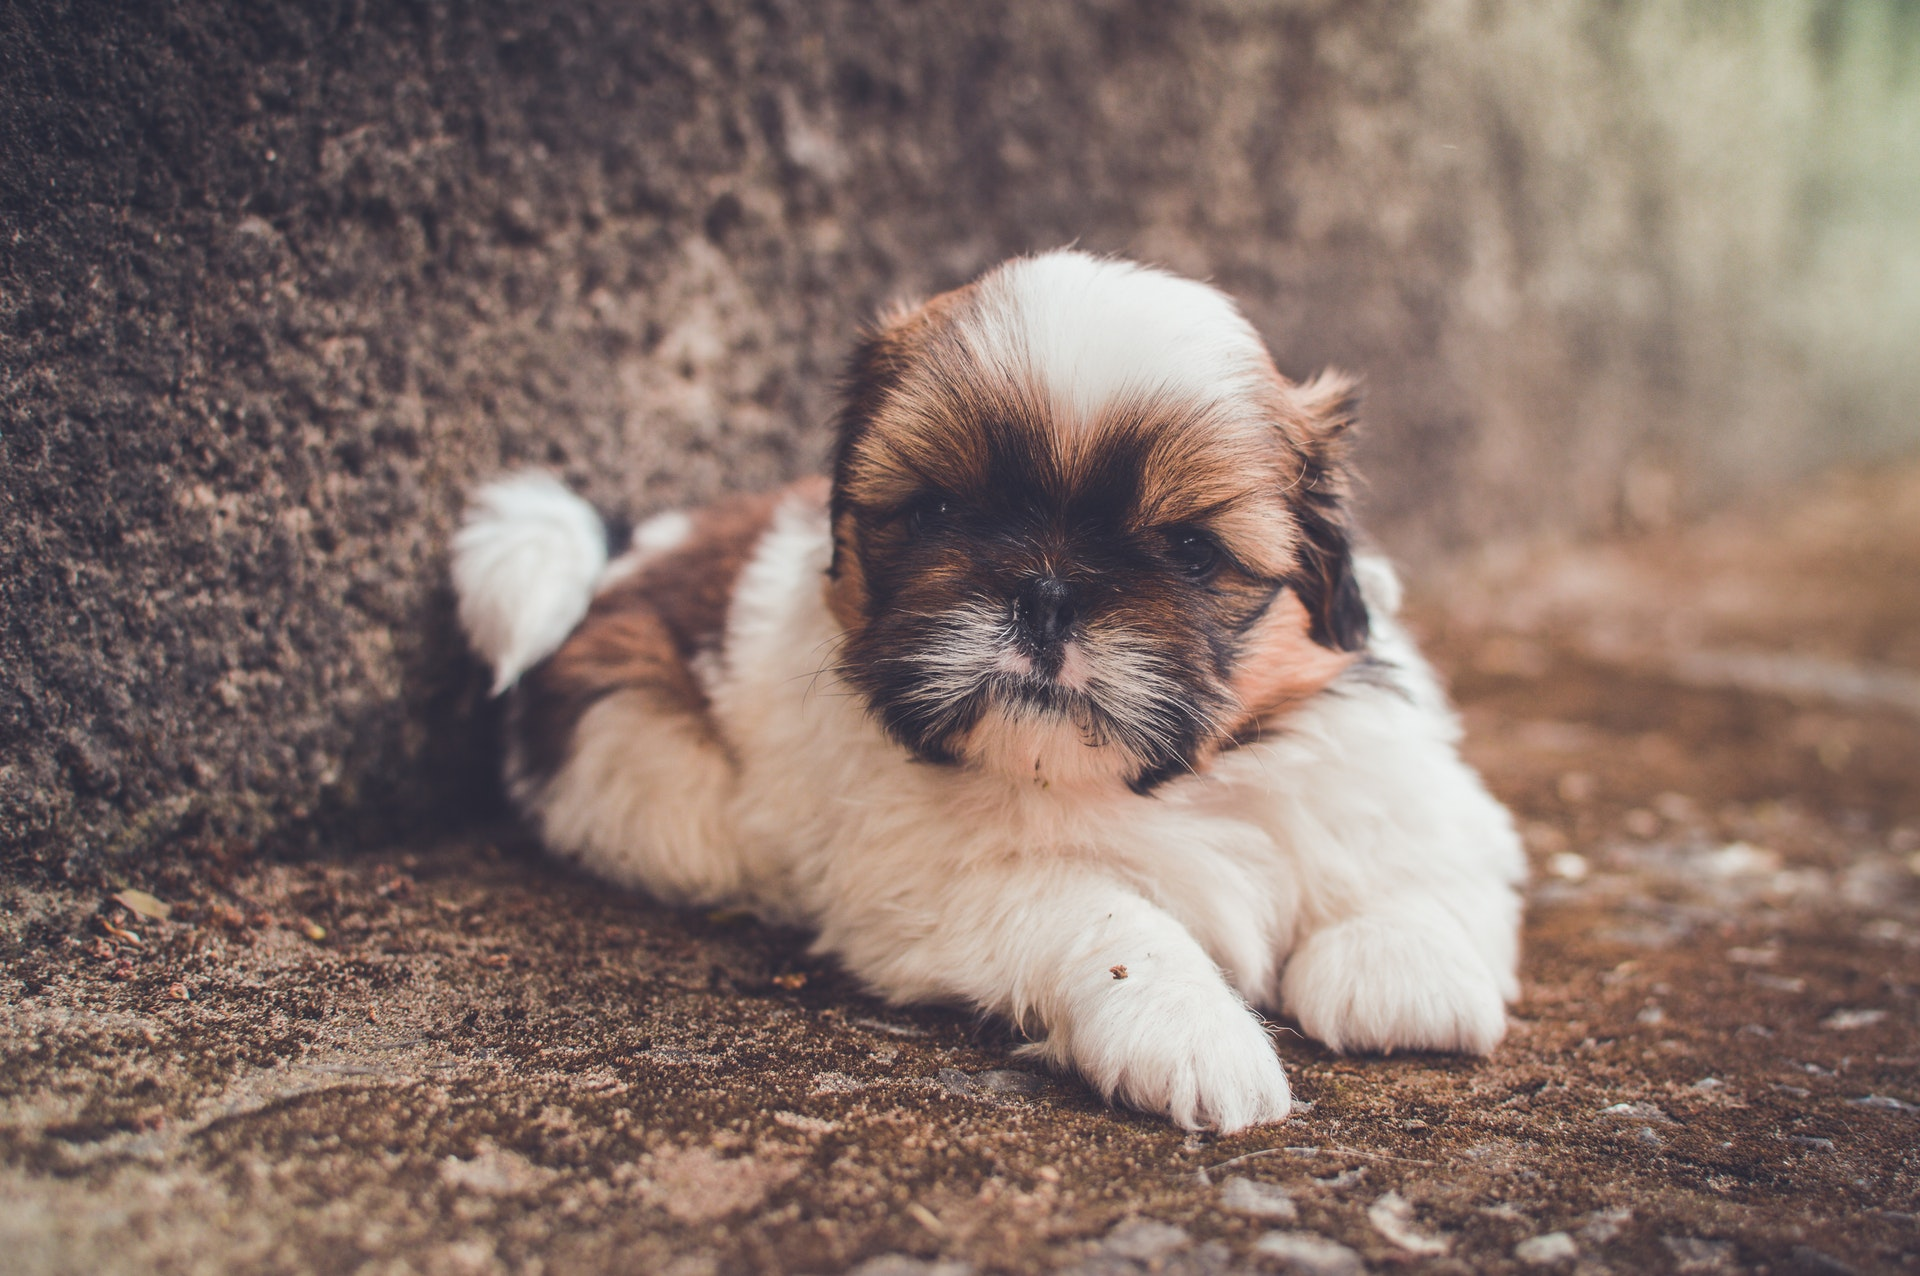 Looking at cute animals could give your relationship its mojo back